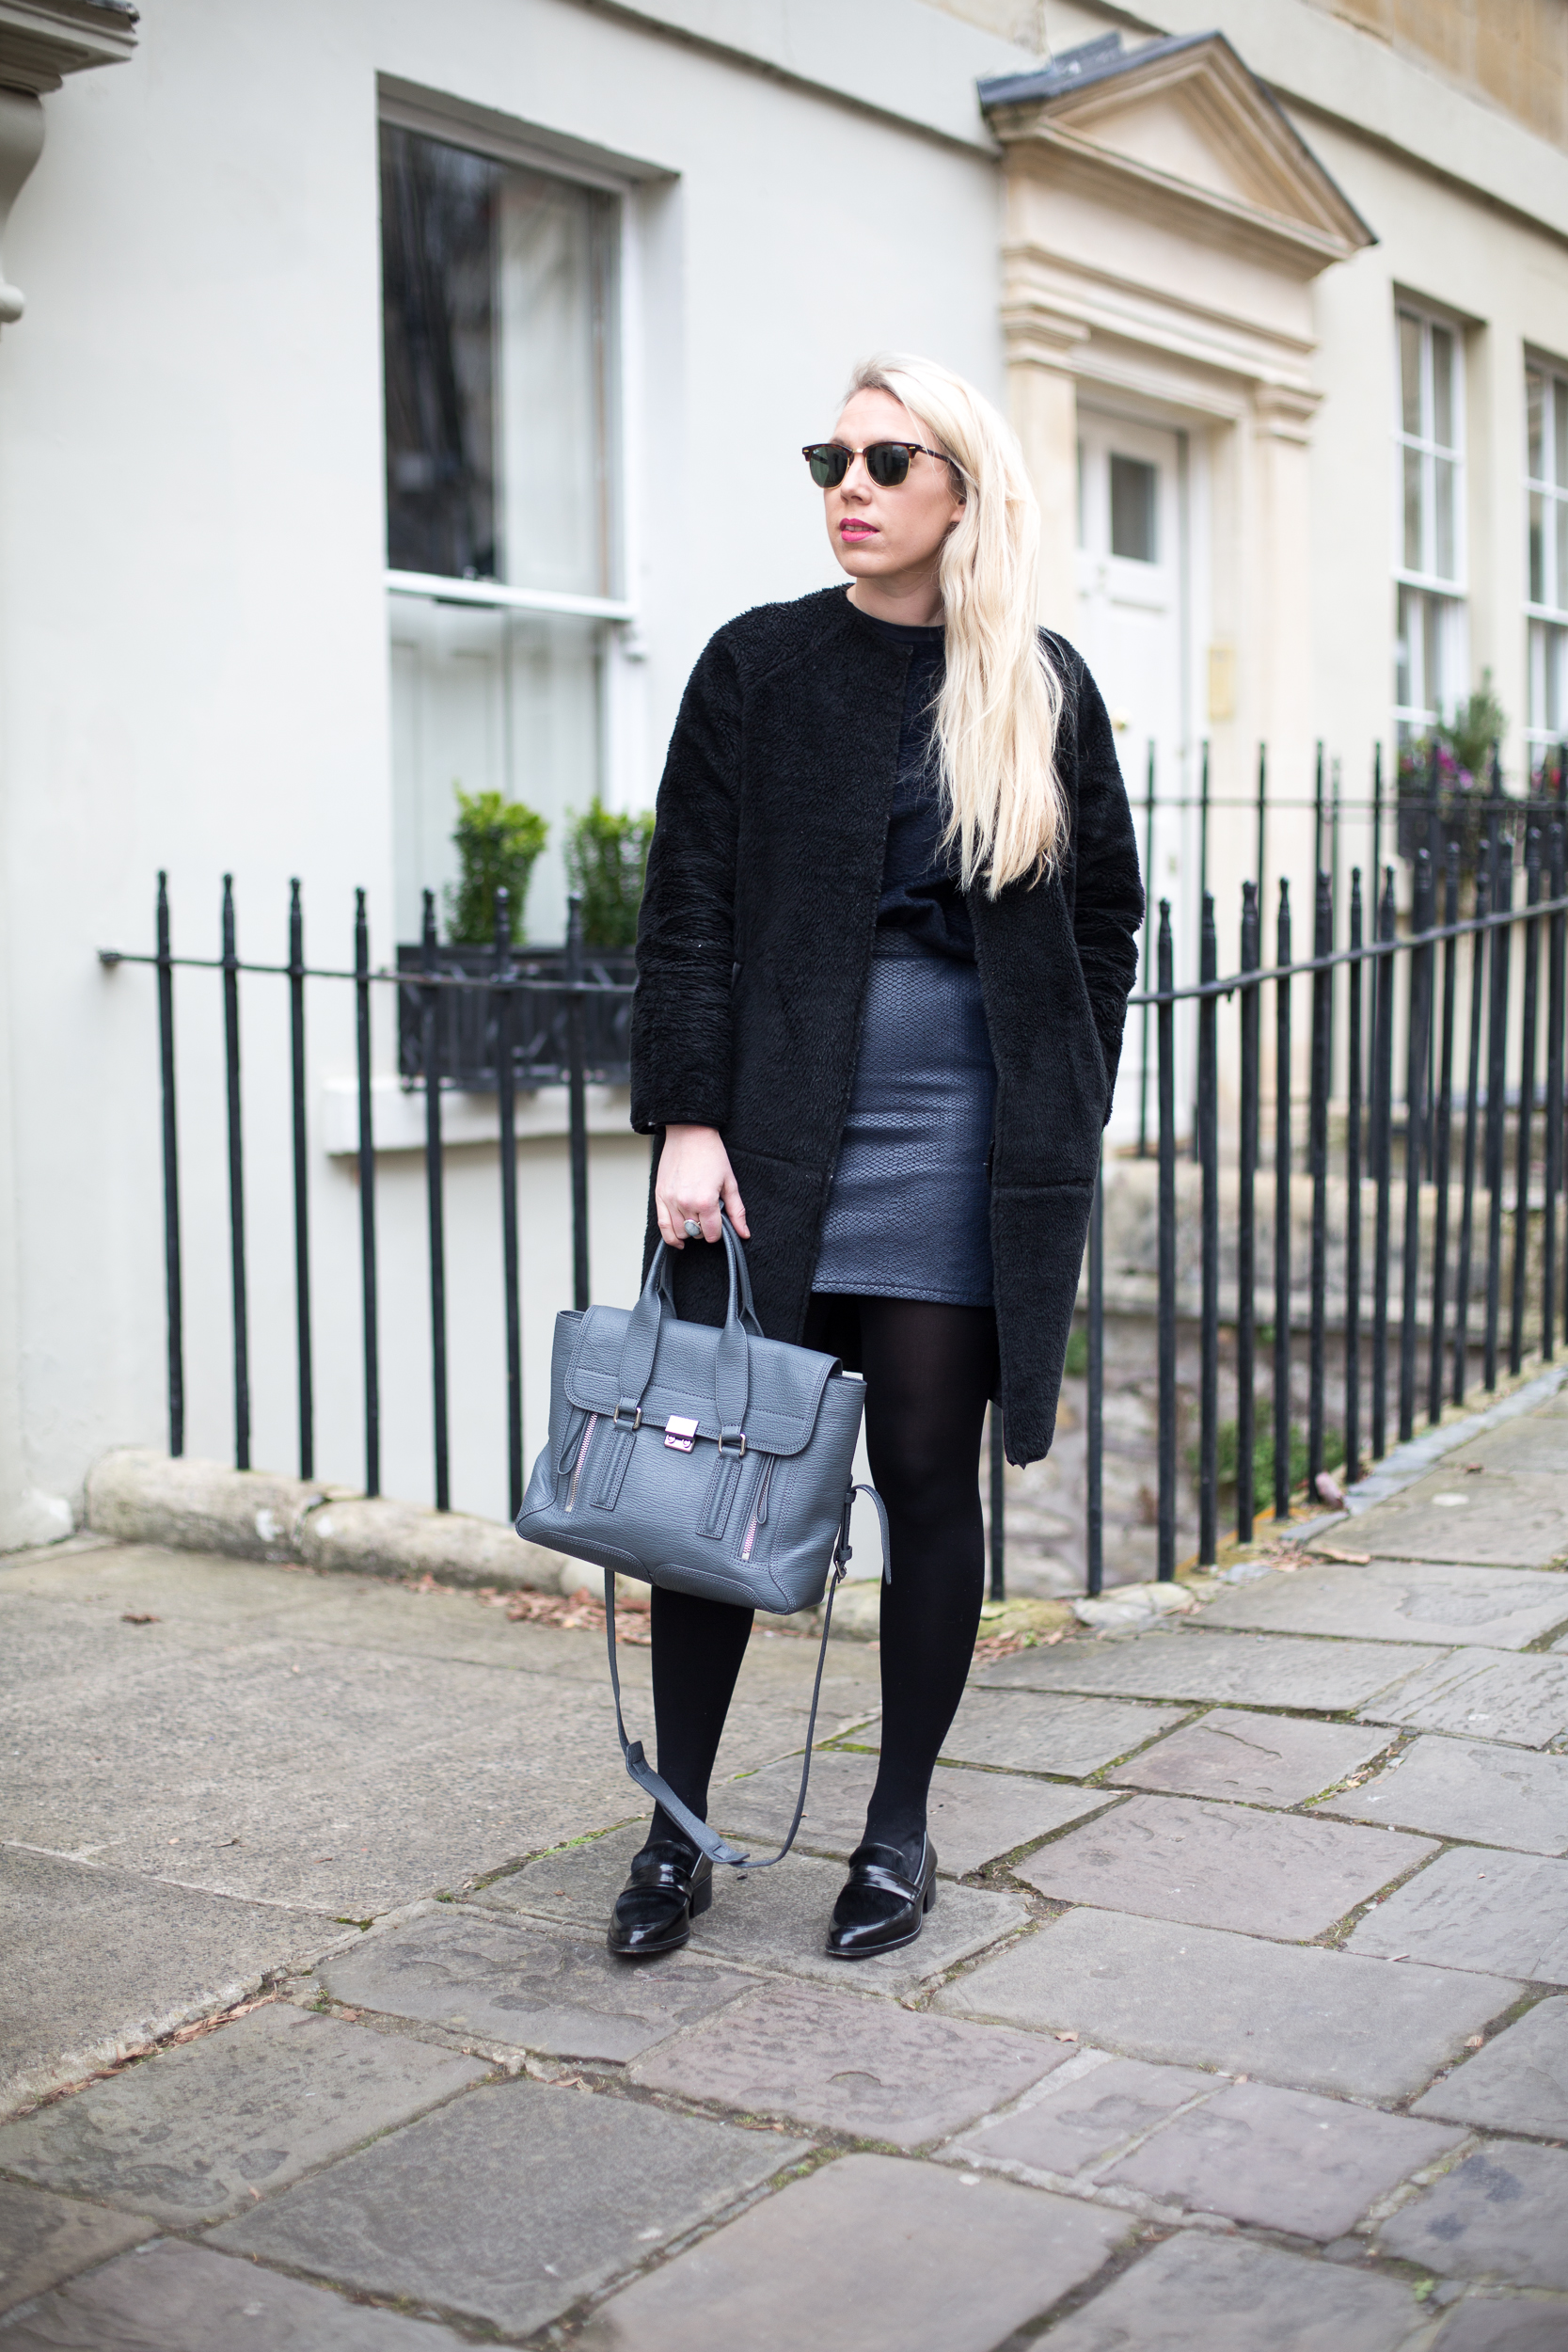 TOPSHOP LEATHER SKIRT